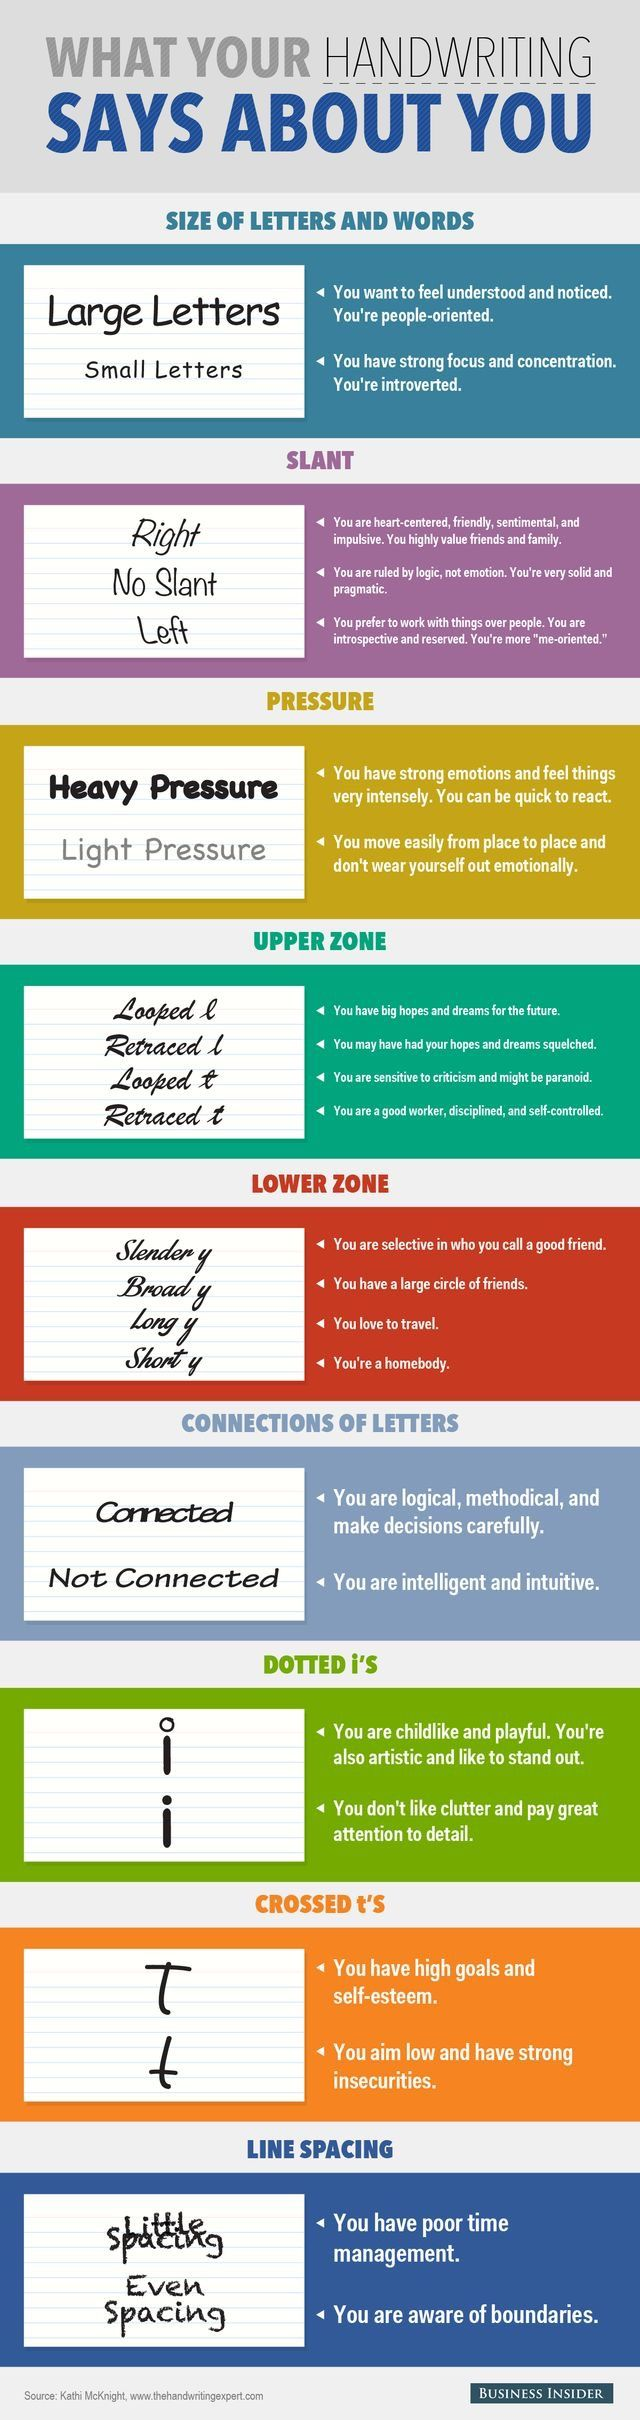 What Your Handwriting Says About You - An Infographic                                                                                                                                                                                 More